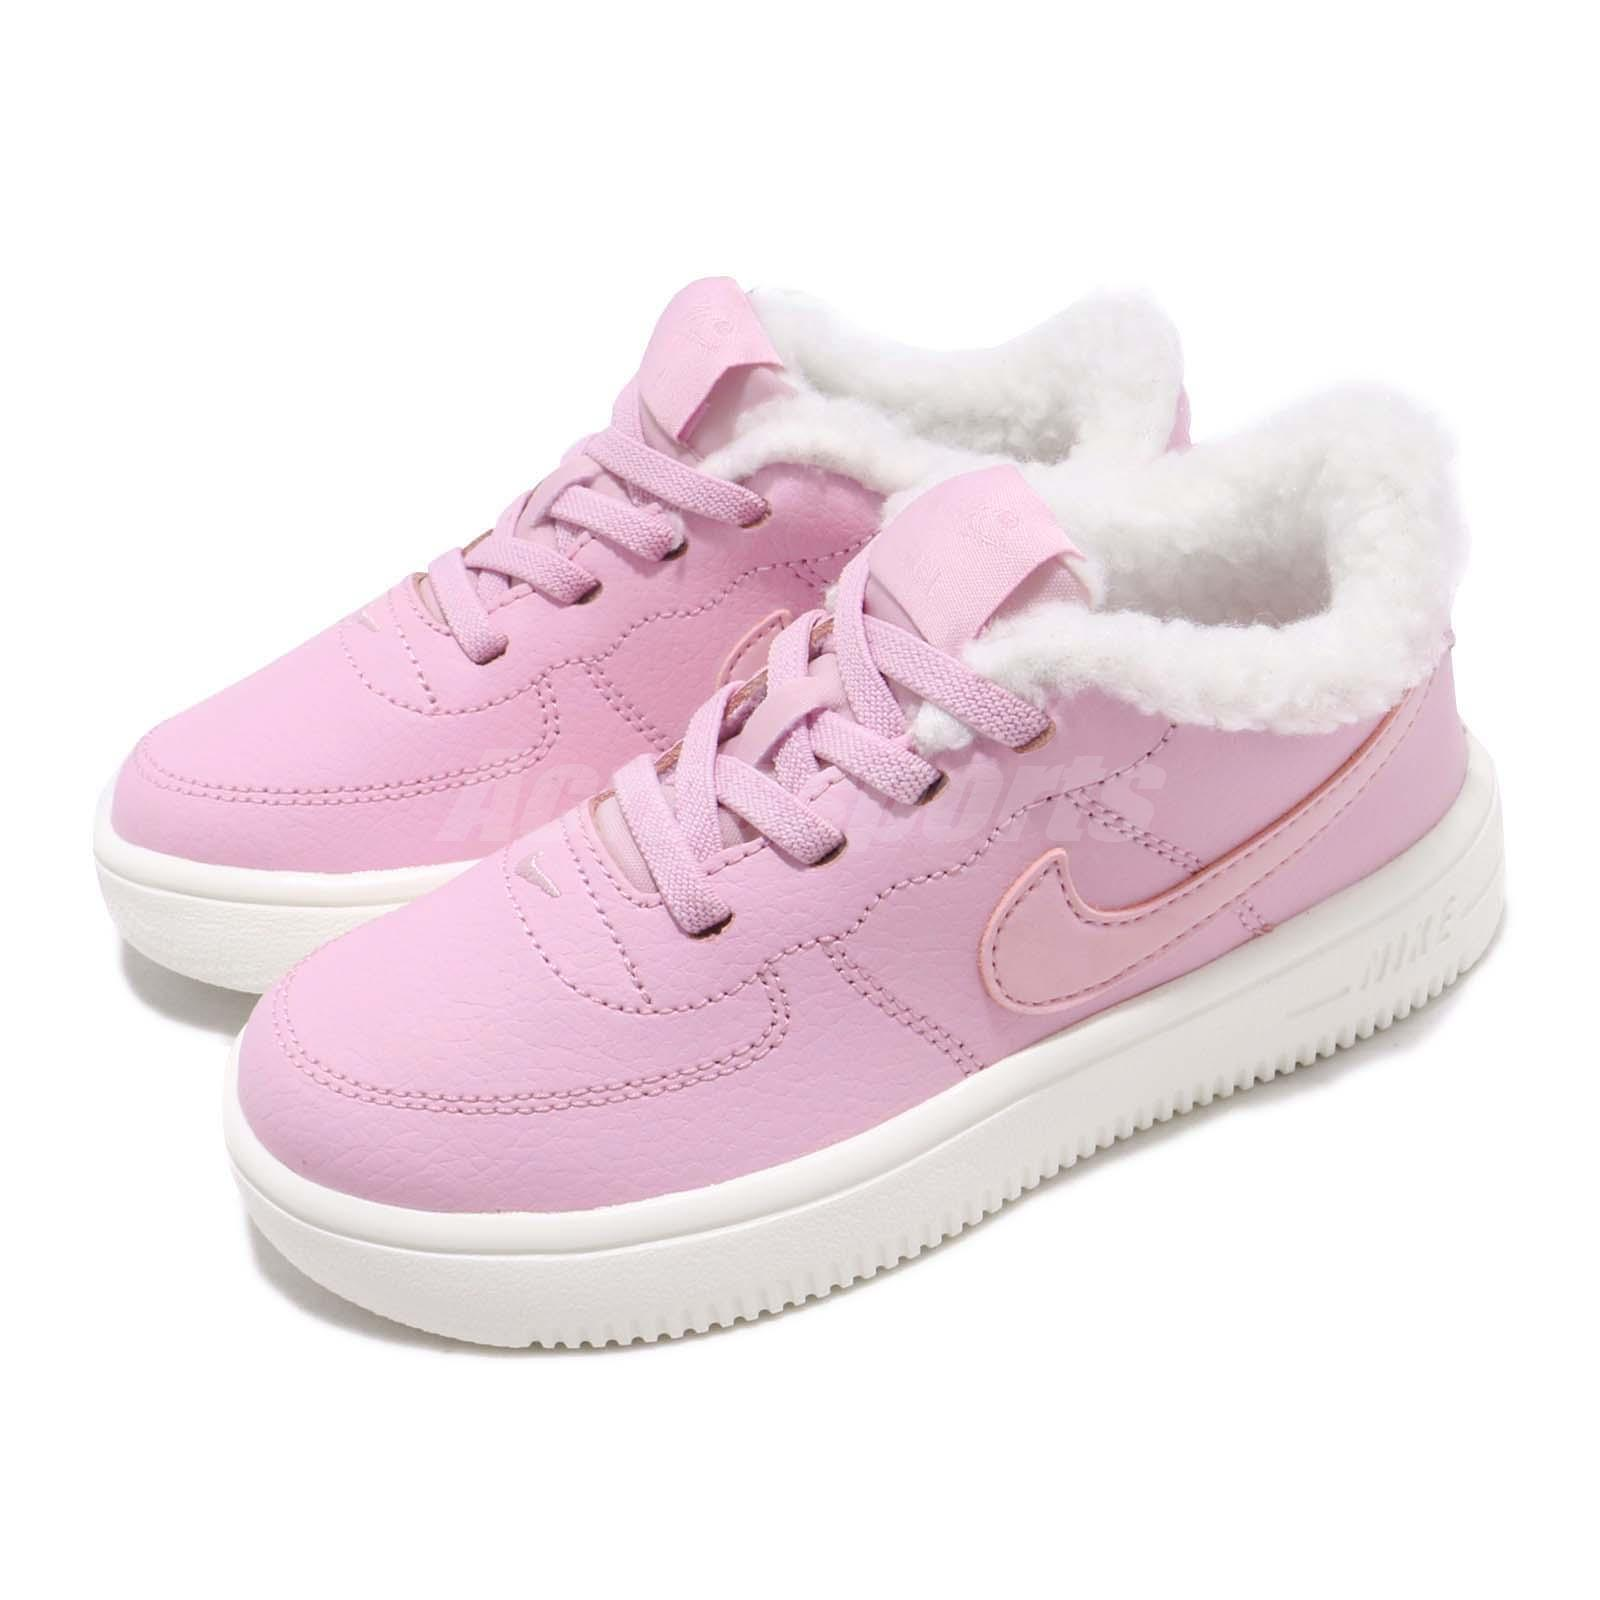 sports shoes 88b88 7a34d Details about Nike Force 1 18 SE TD Light Arctic Pink Toddler Infant Baby  Shoes AR1134-600